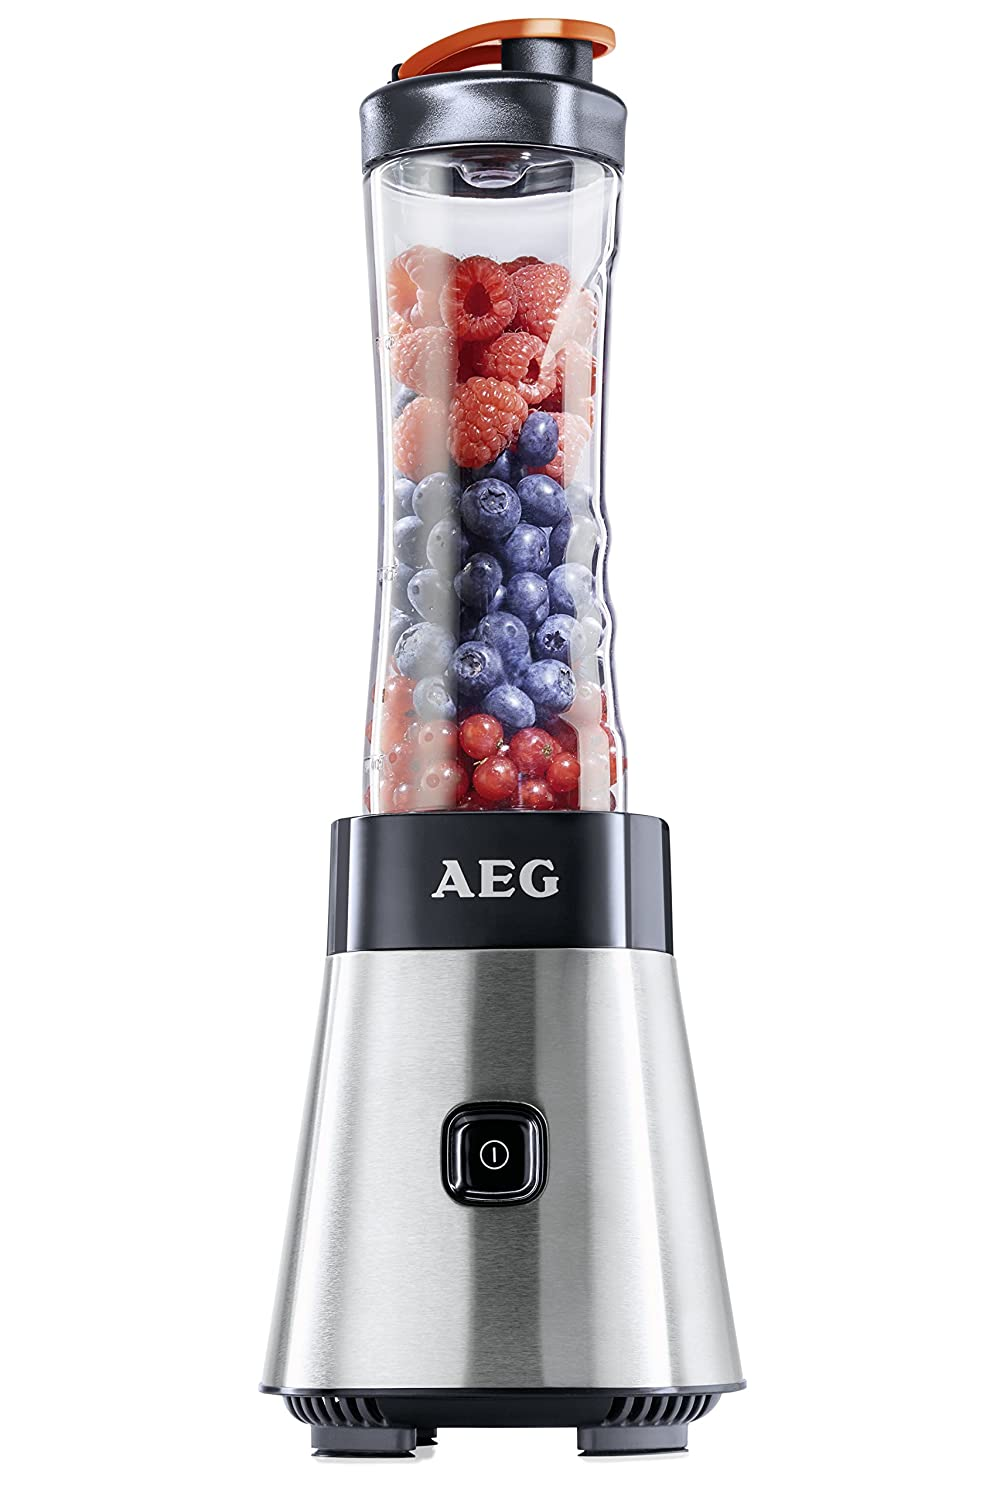 AEG Mixer amazon